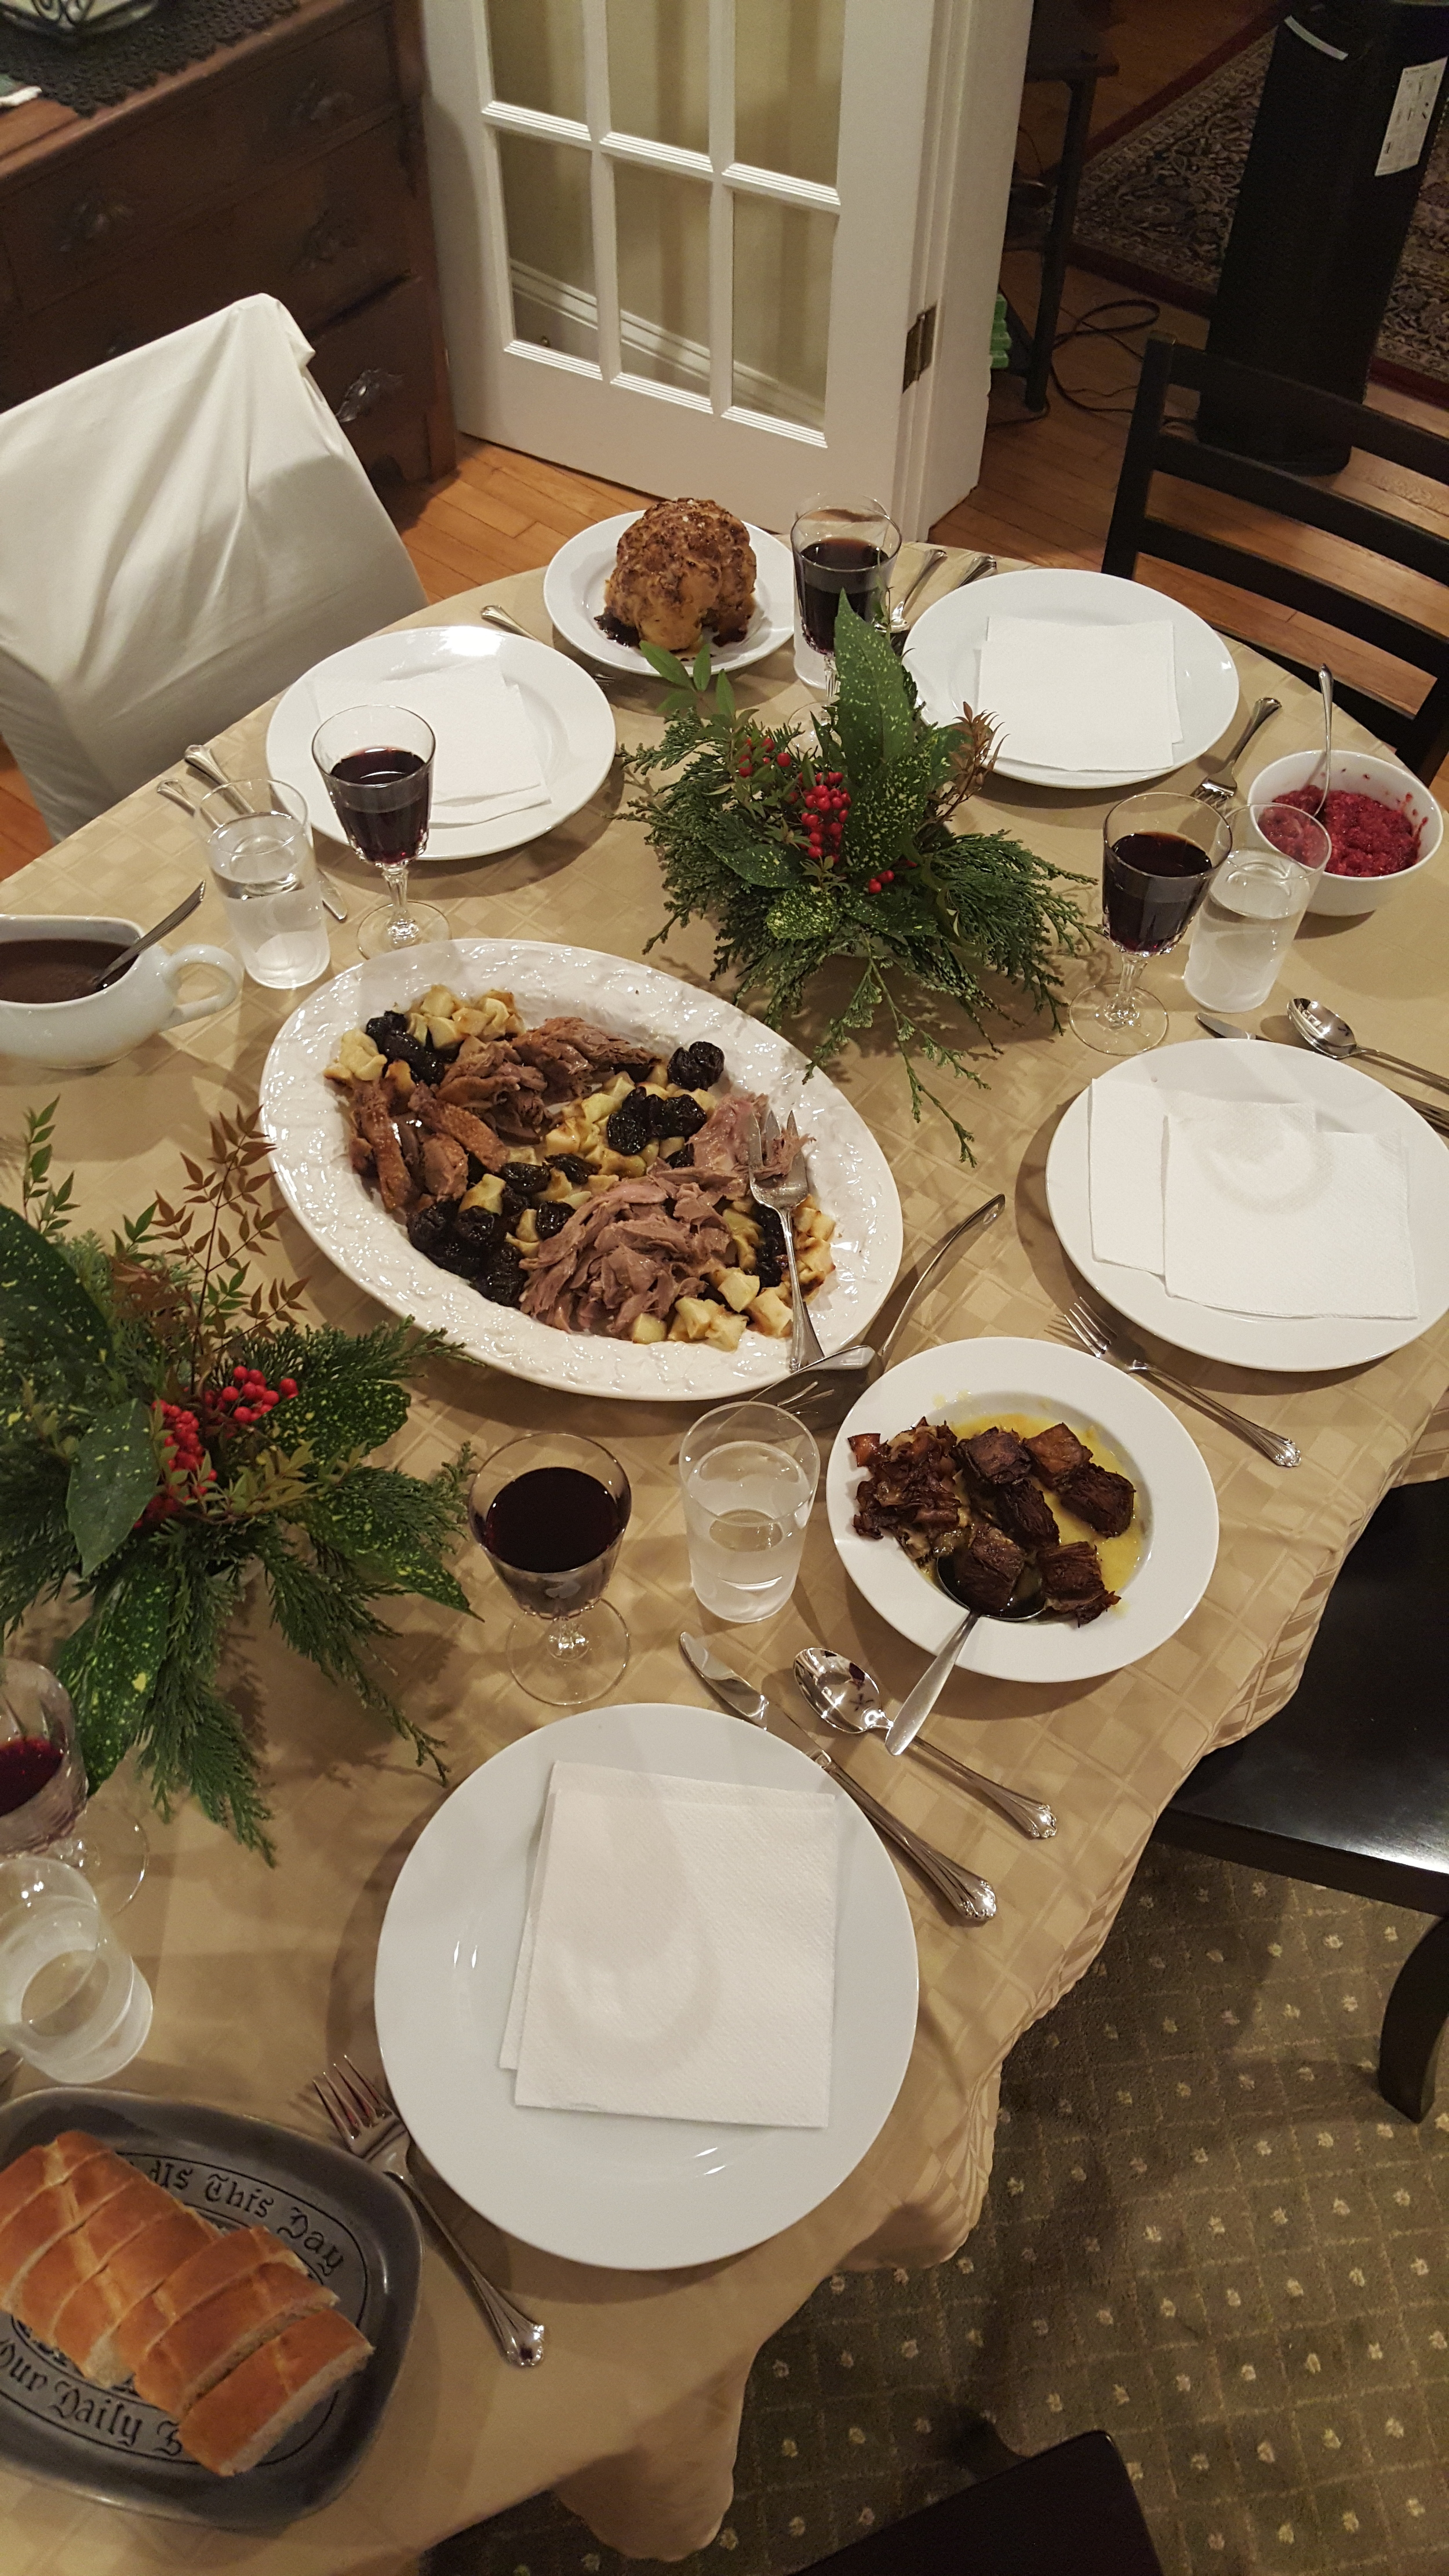 My family's Christmas dinner: Goose with apple &prune garnish w/ Port gravy, sweet and sour cauliflower, seared cubes of mushroom mille-fuille, mashed potatoes, cranberry sauce, and baguette. Stuffed.